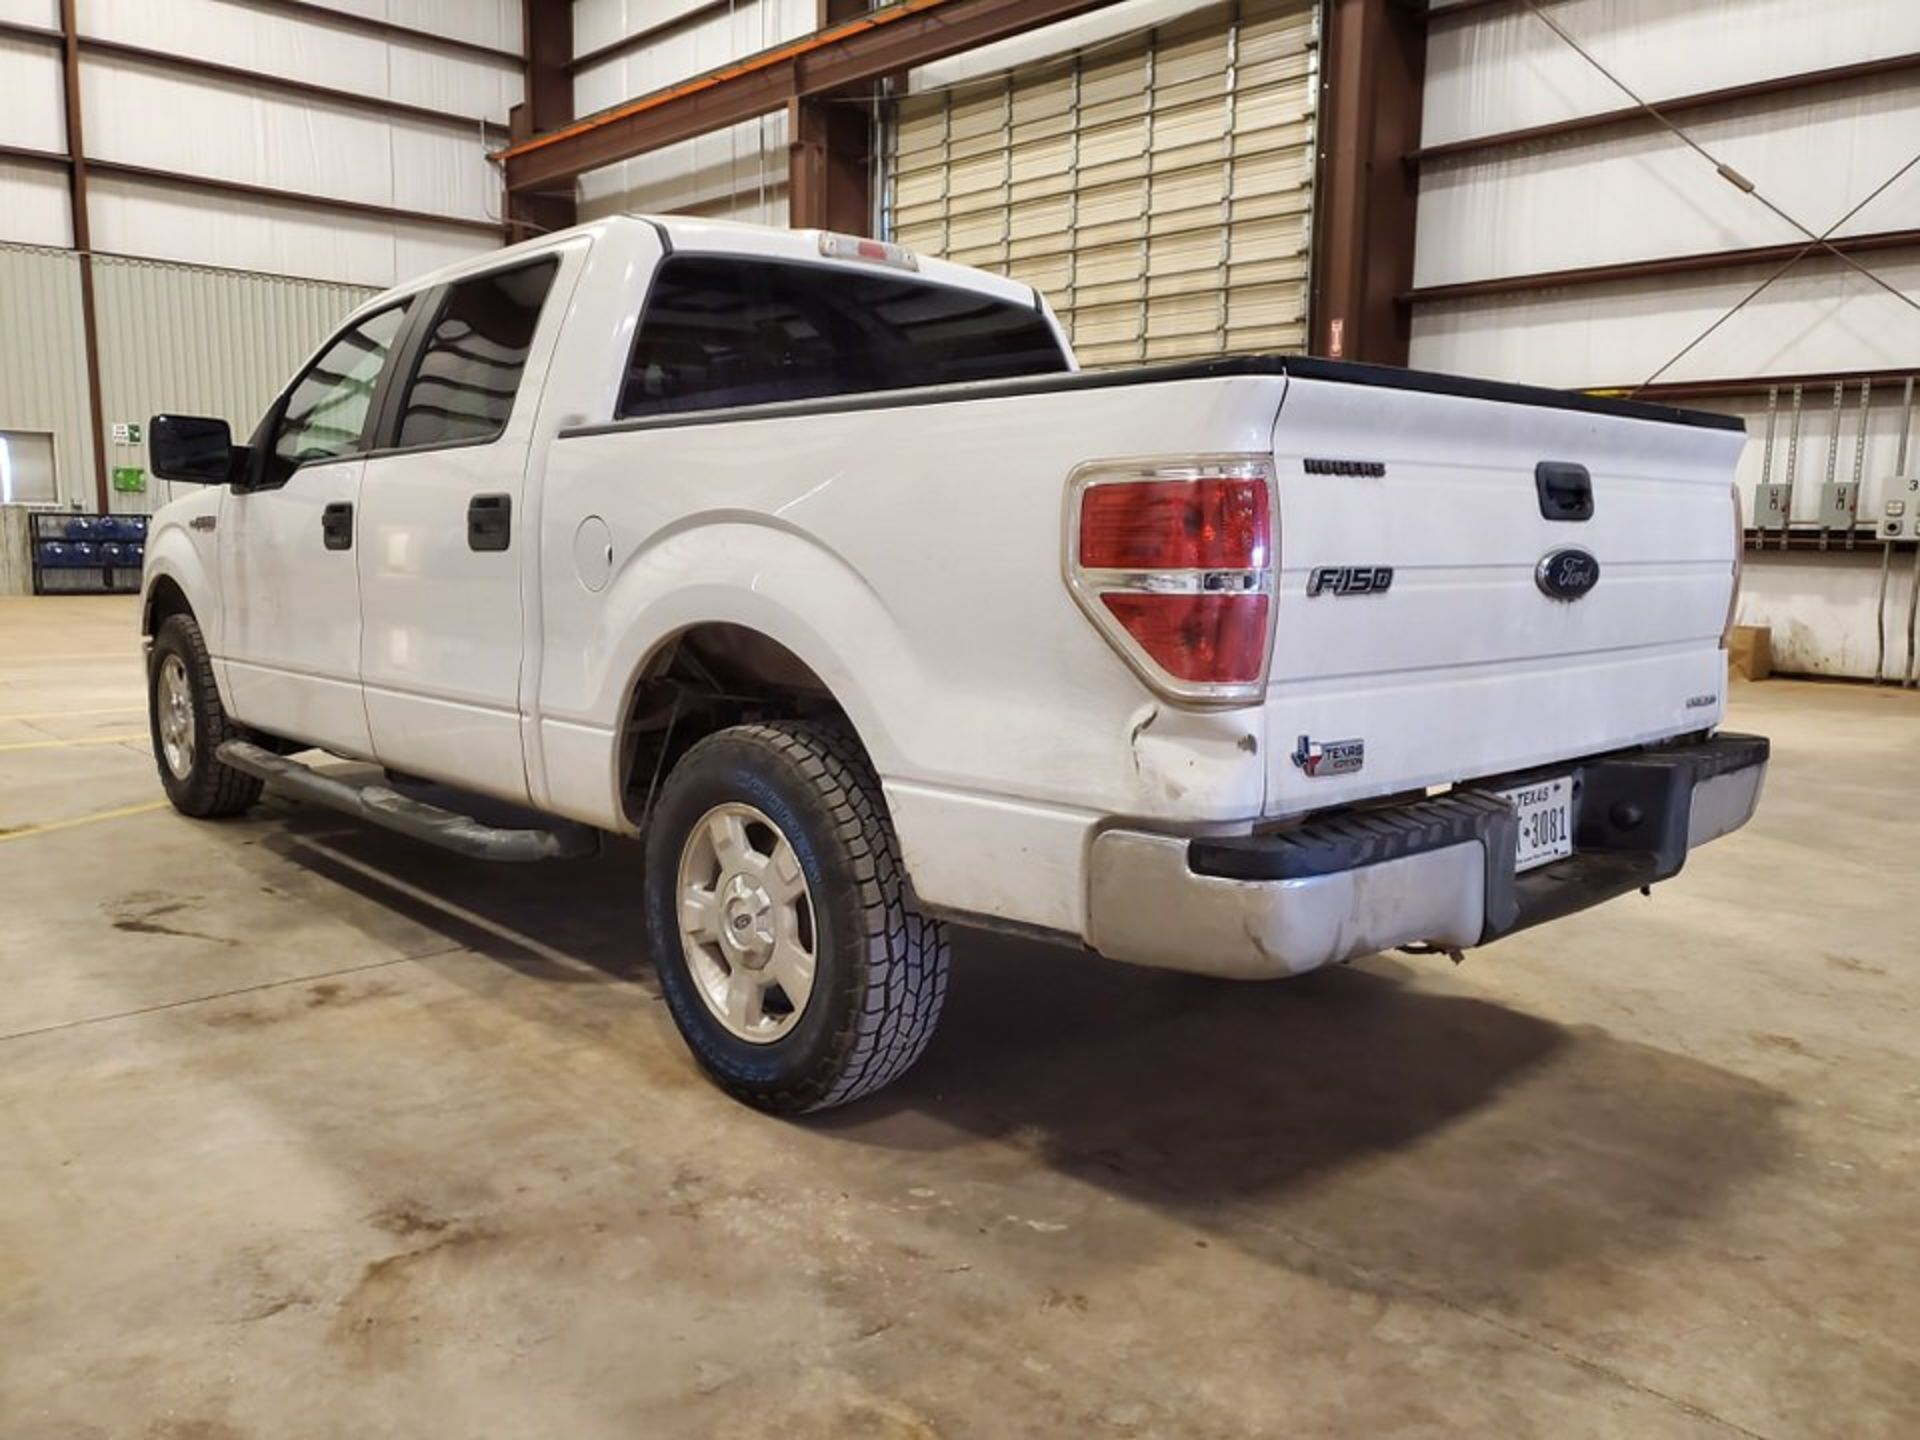 2013 Ford F150 Pickup Vin: 1FTFW1CF0DKF14097, TX Plates: CFT 3081, W/ 6.2L Engine - Image 4 of 19